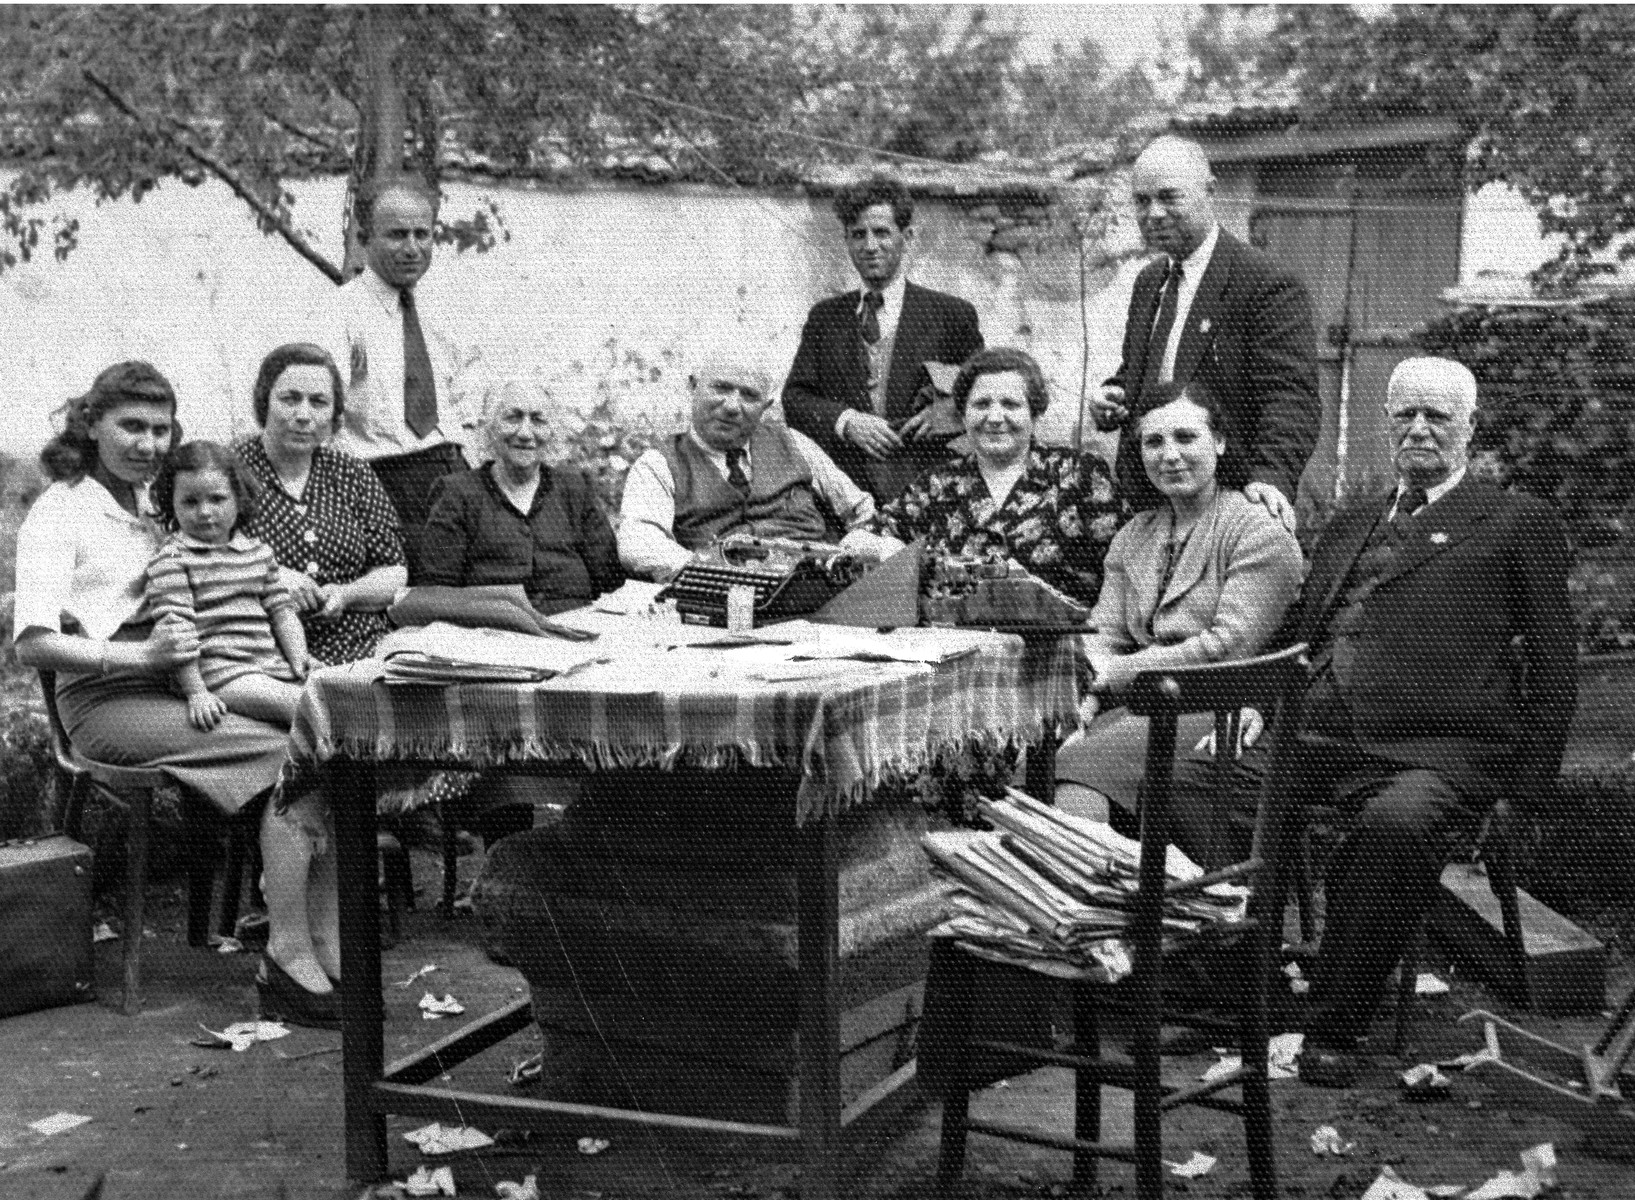 Members of the extended Baruch family pose outside around a table in the yard of their residence in Kyustendil, Bulgaria, following their expulsion from the capital, Sofia.  During the period of their exile in the provinces, the members of extended Baruch family lived in the home of Miriam and Pinkas Baruch, who had retained their house in Kyustendil after moving to Sofia in the 1930s.